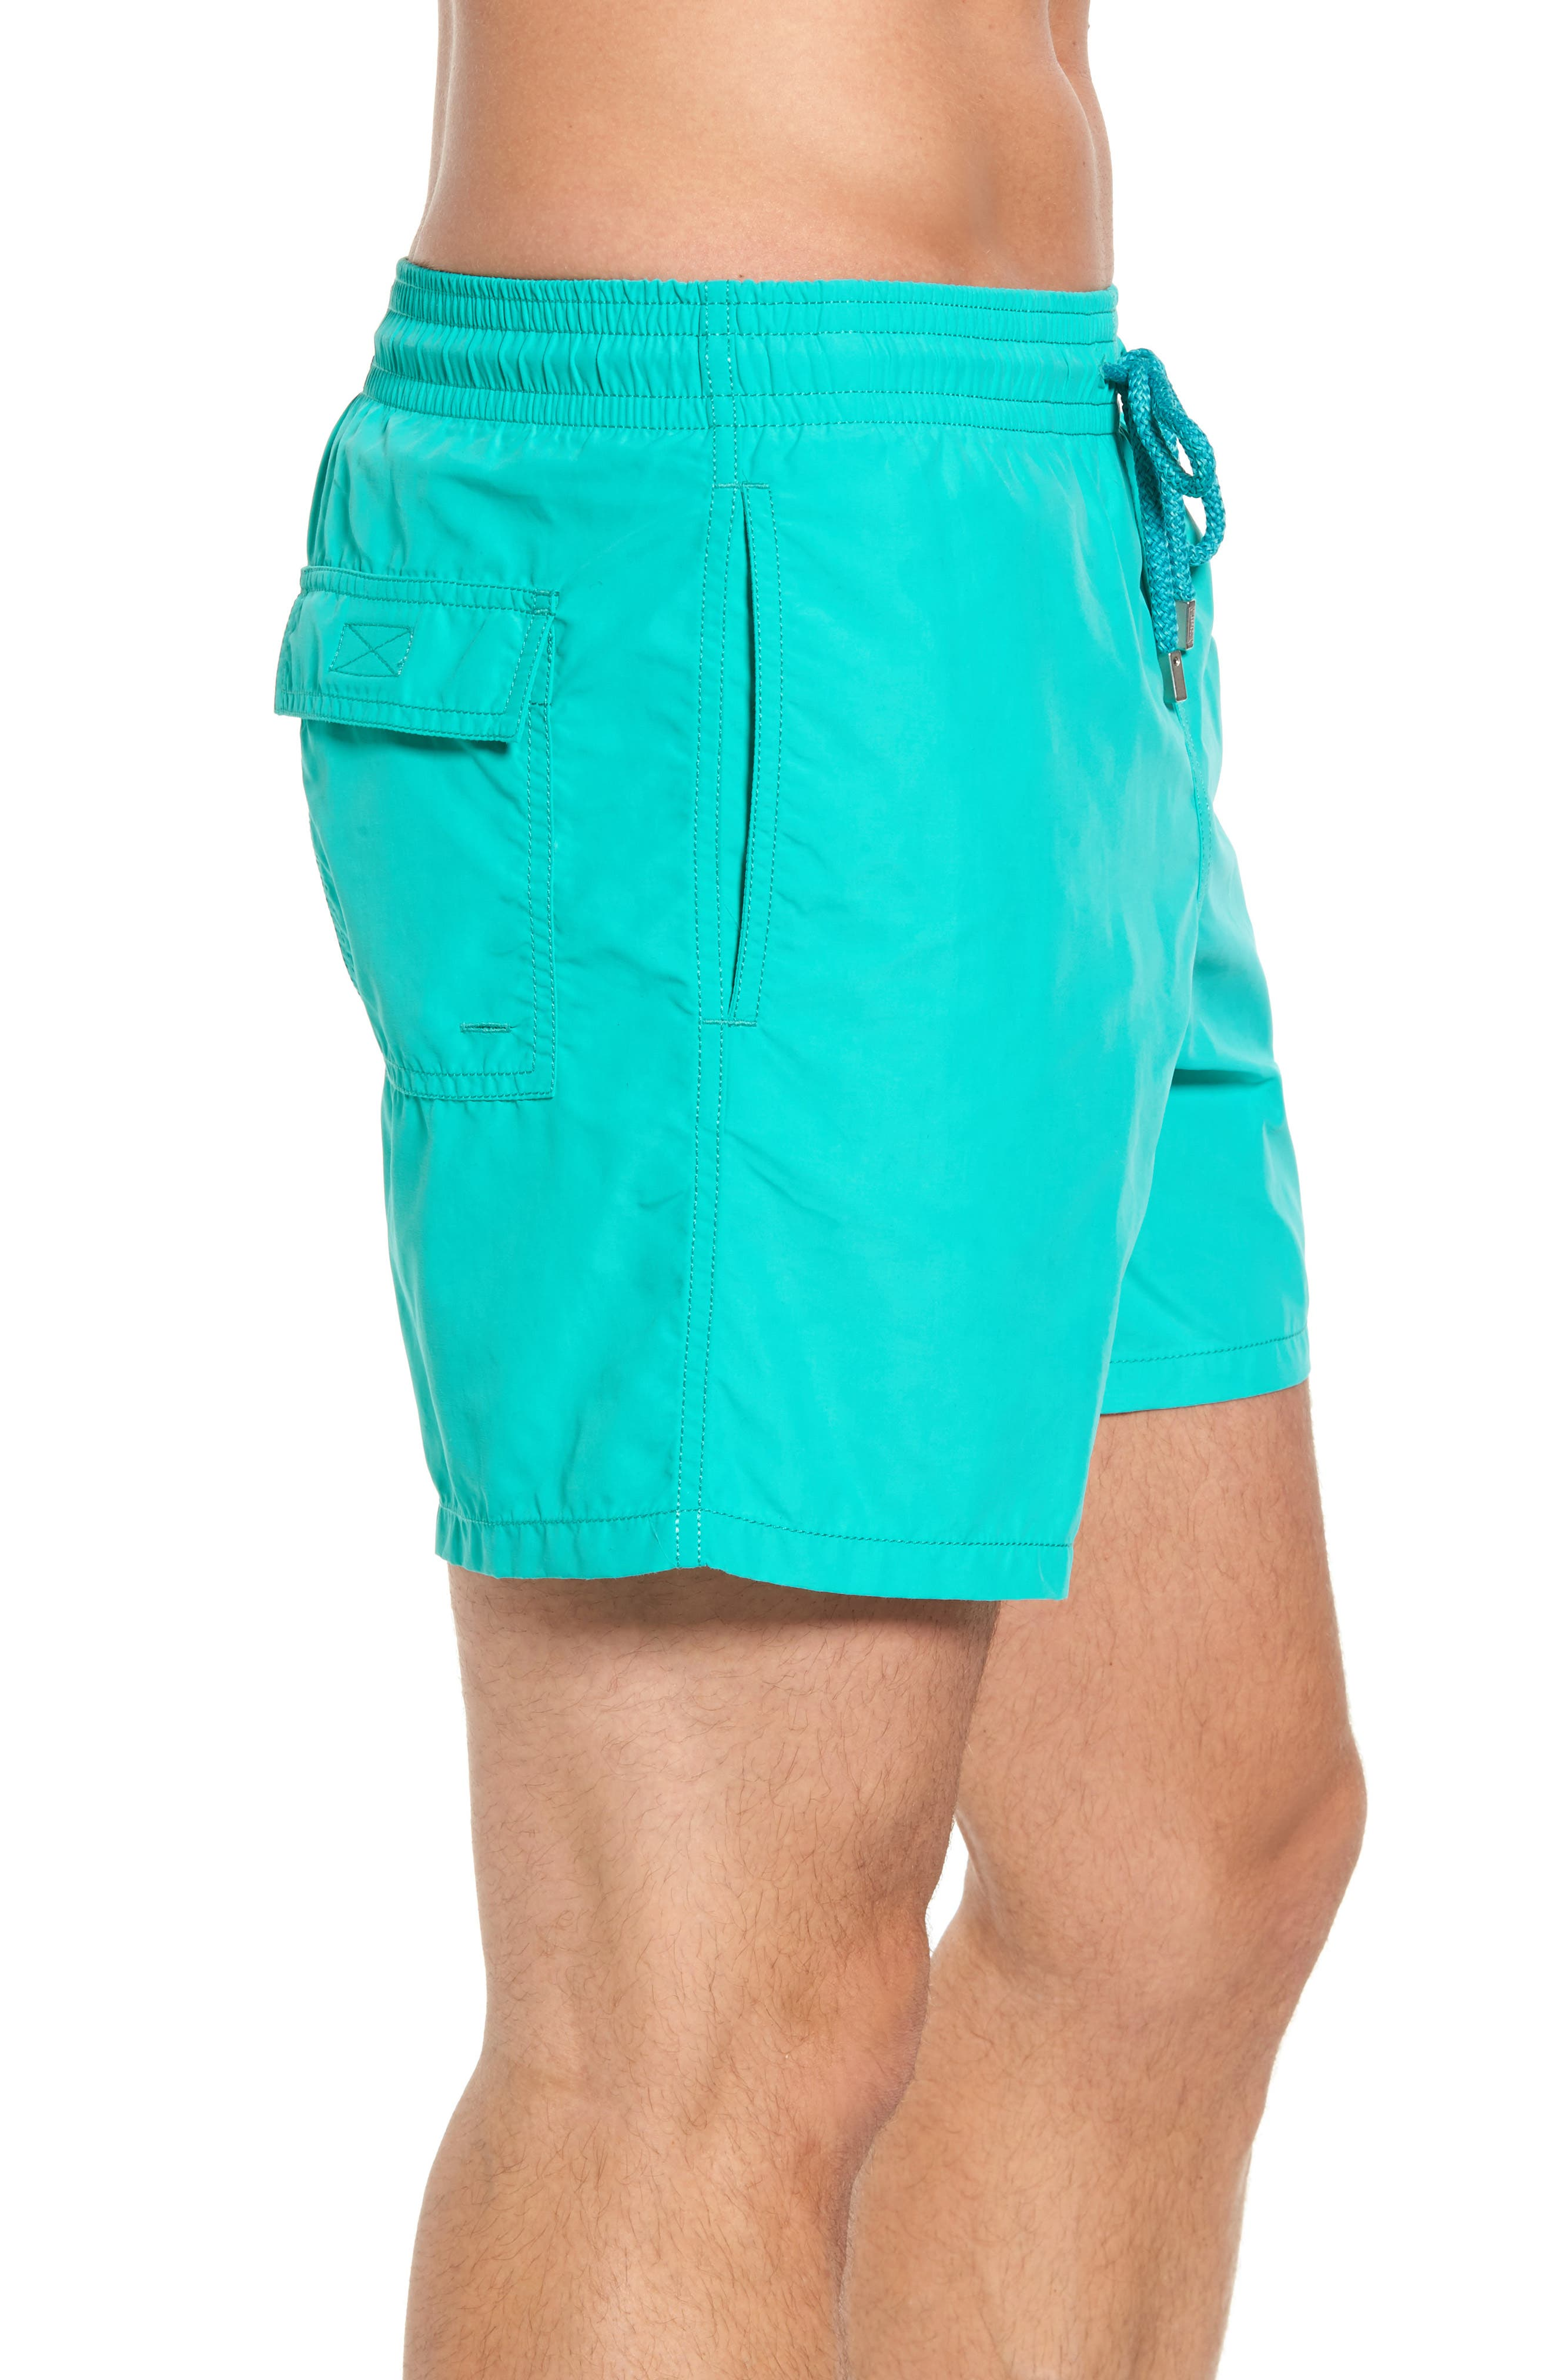 Sardine Water Reactive Swim Trunks,                             Alternate thumbnail 3, color,                             348